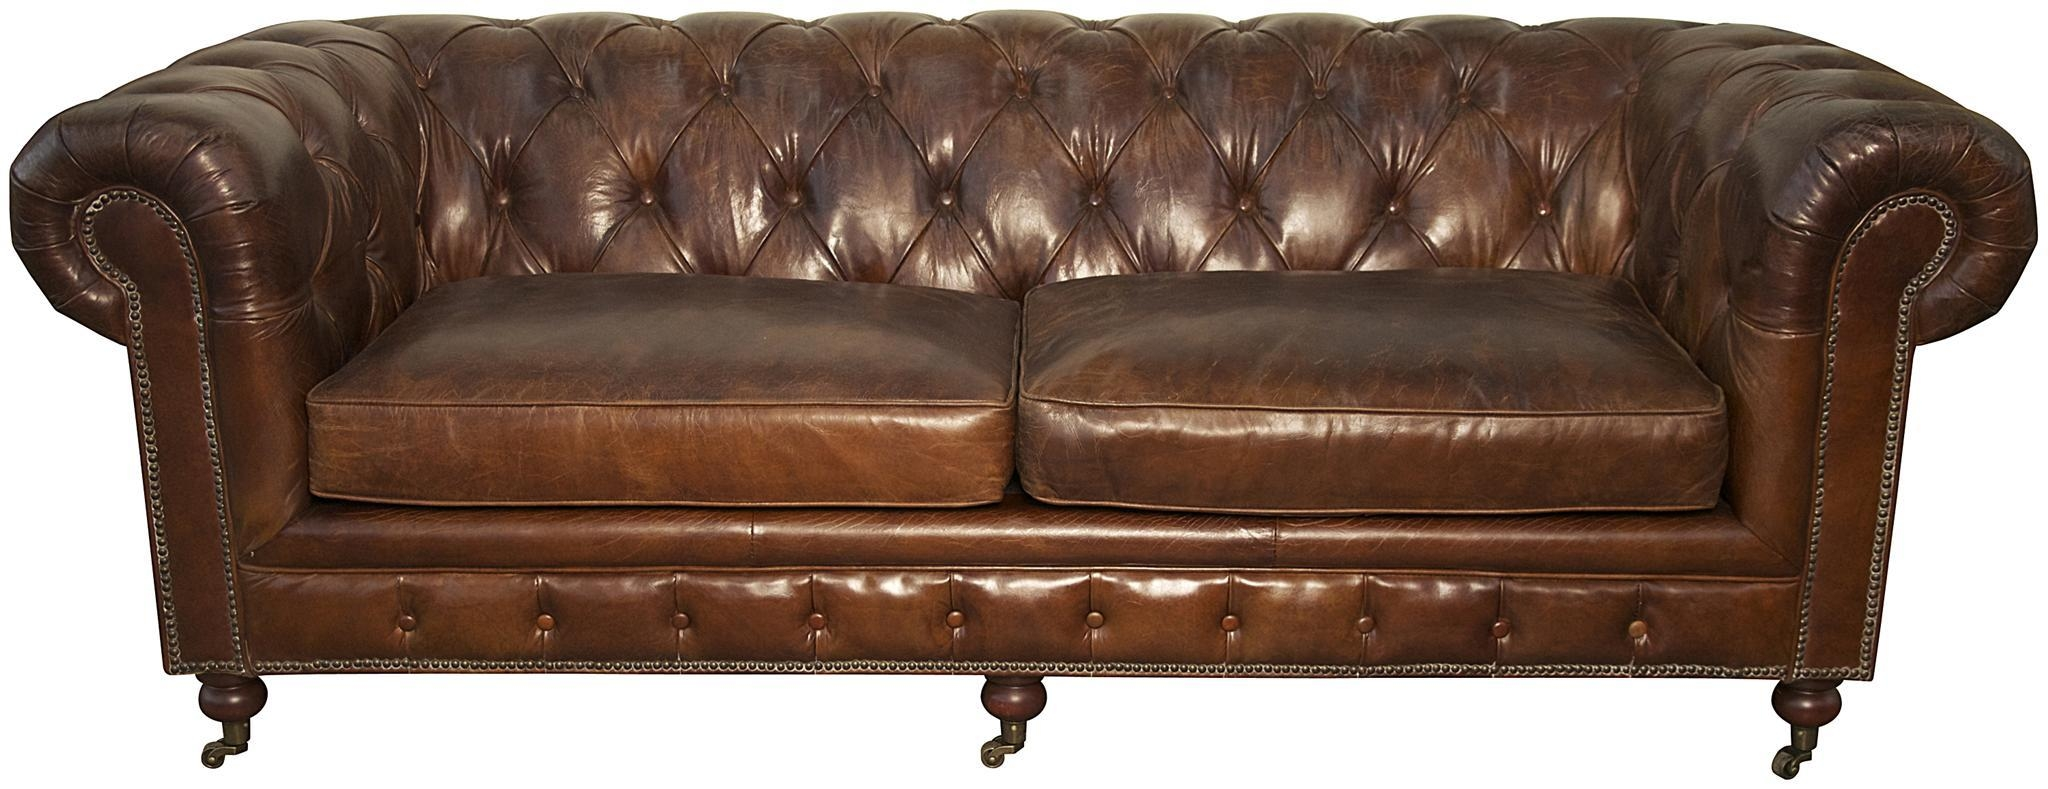 Sofas Center : Leather Tufted Sofa Seat Too With Rolled Arms White For Brown Leather Tufted Sofas (View 2 of 20)